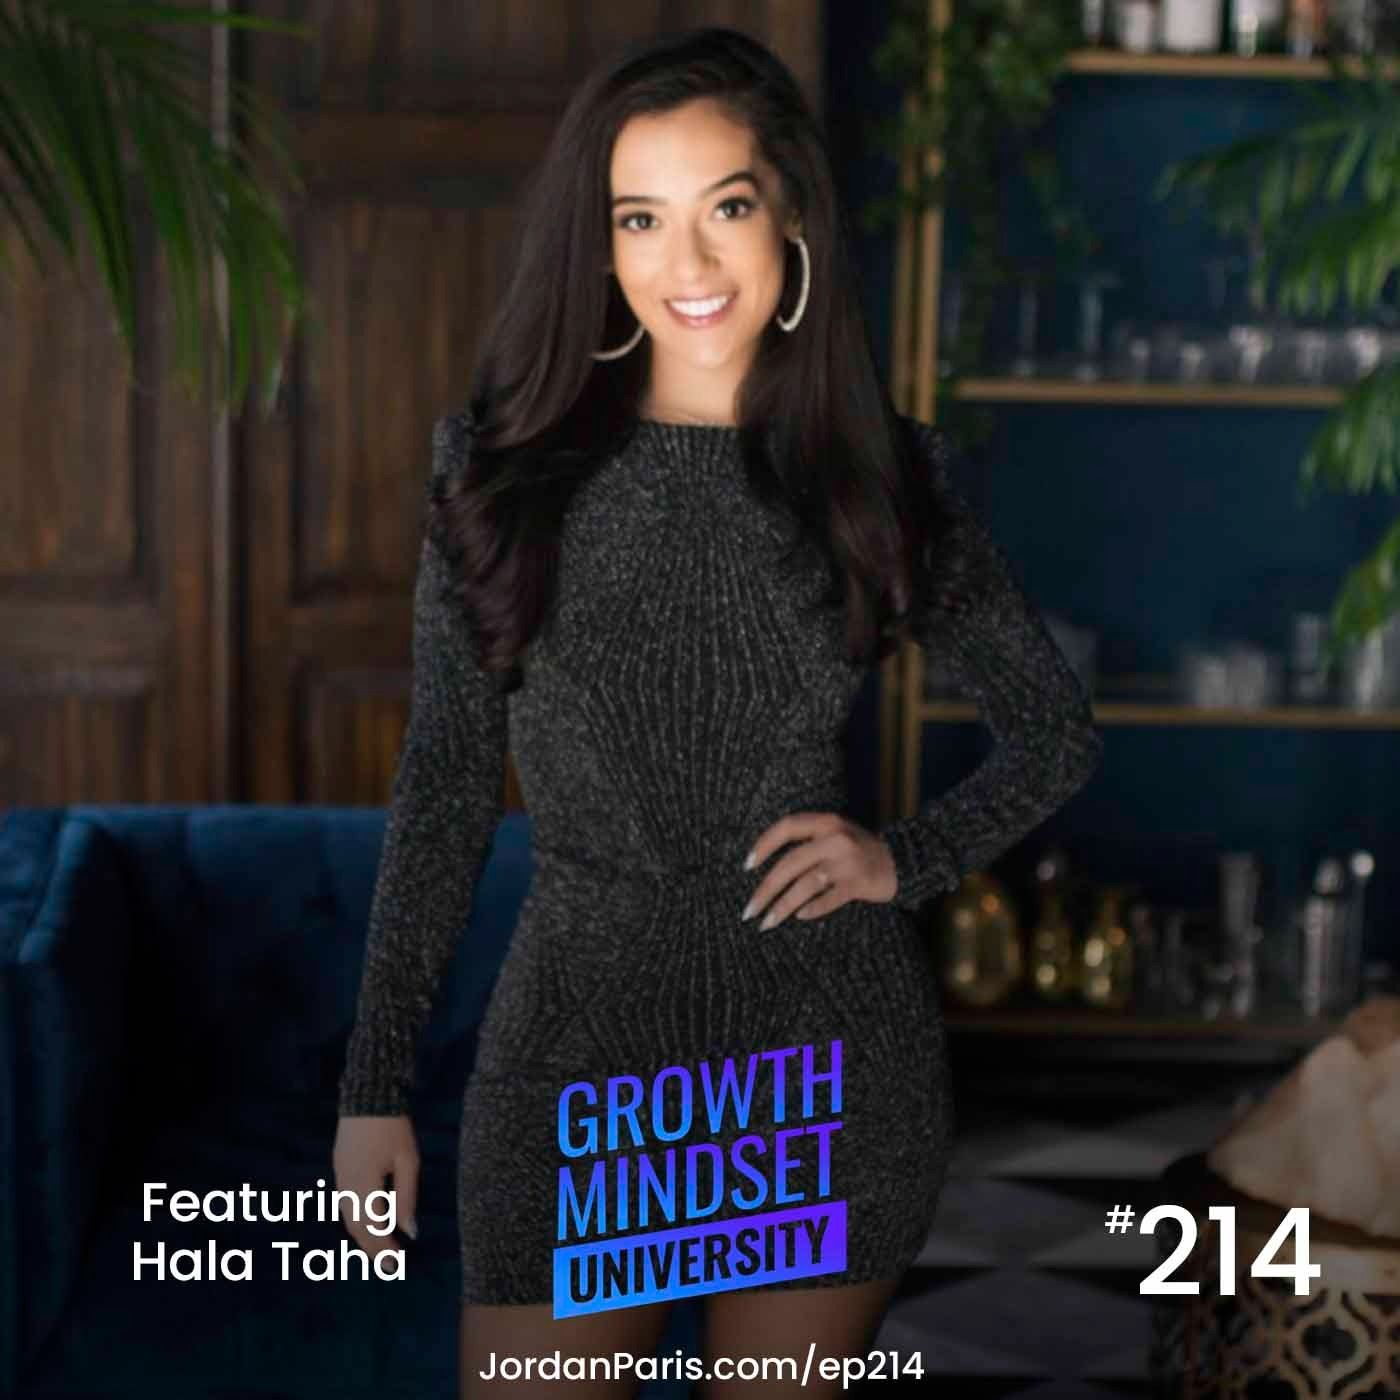 How to Build a Lucrative Side Hustle Without Quitting Your Job | Hala Taha